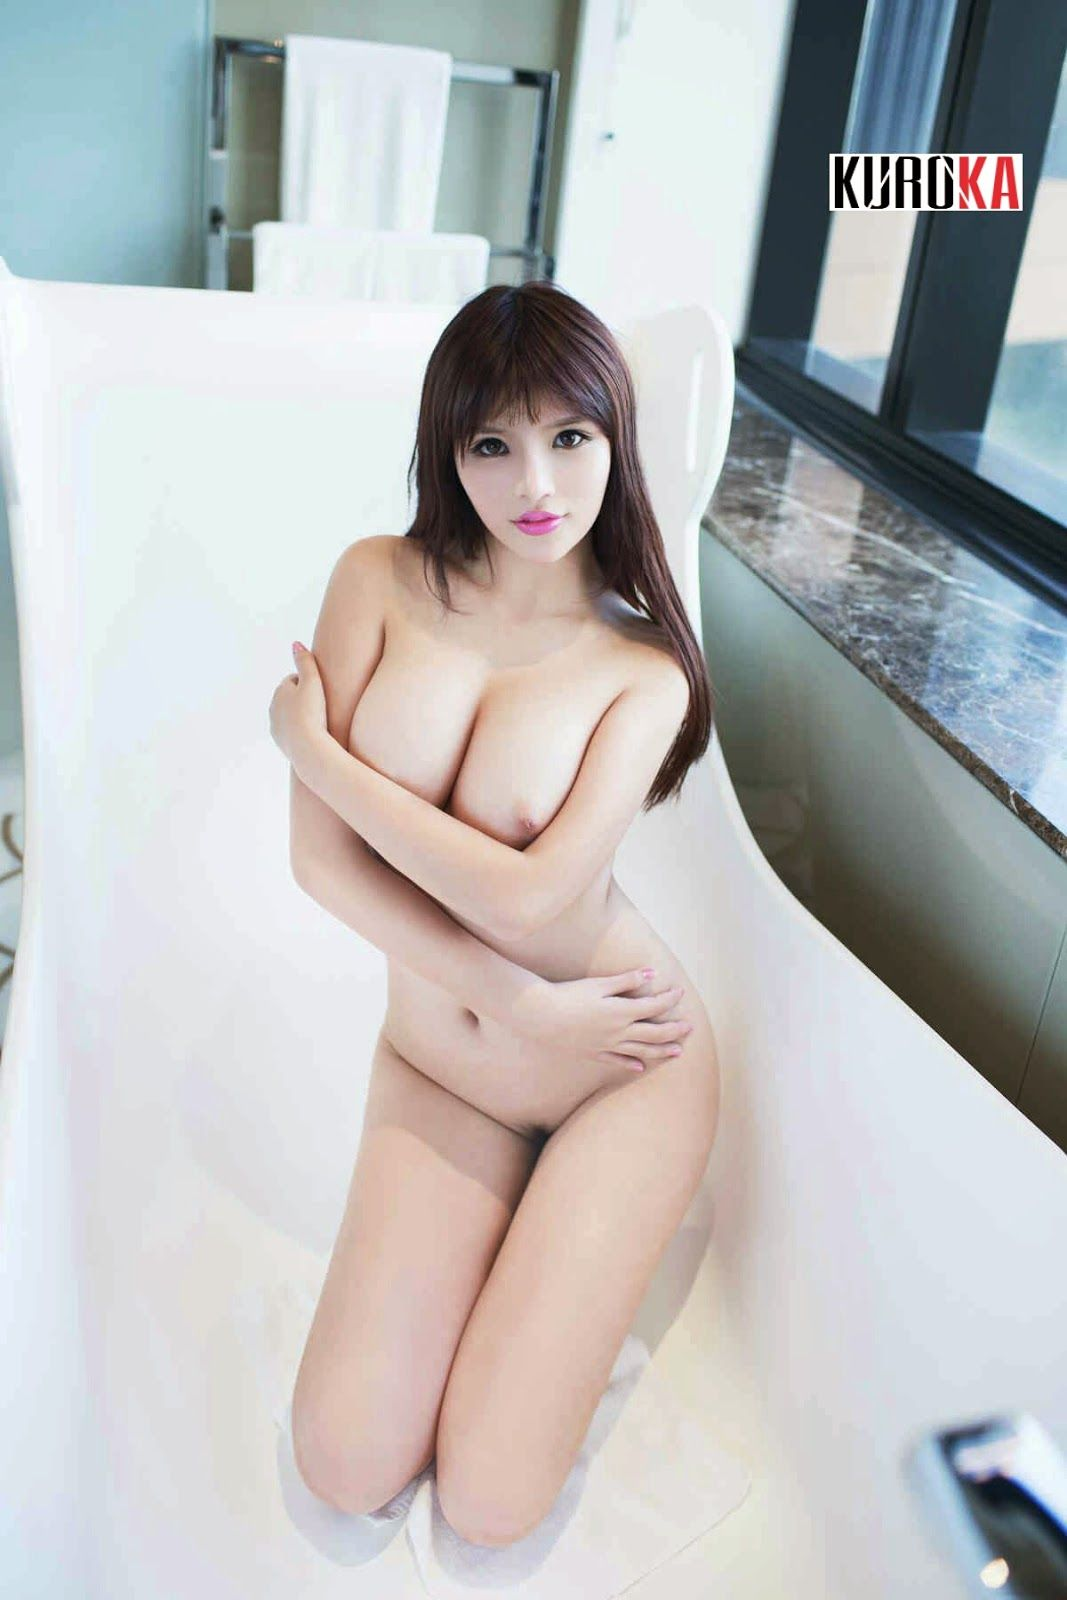 lisa tong naked picture